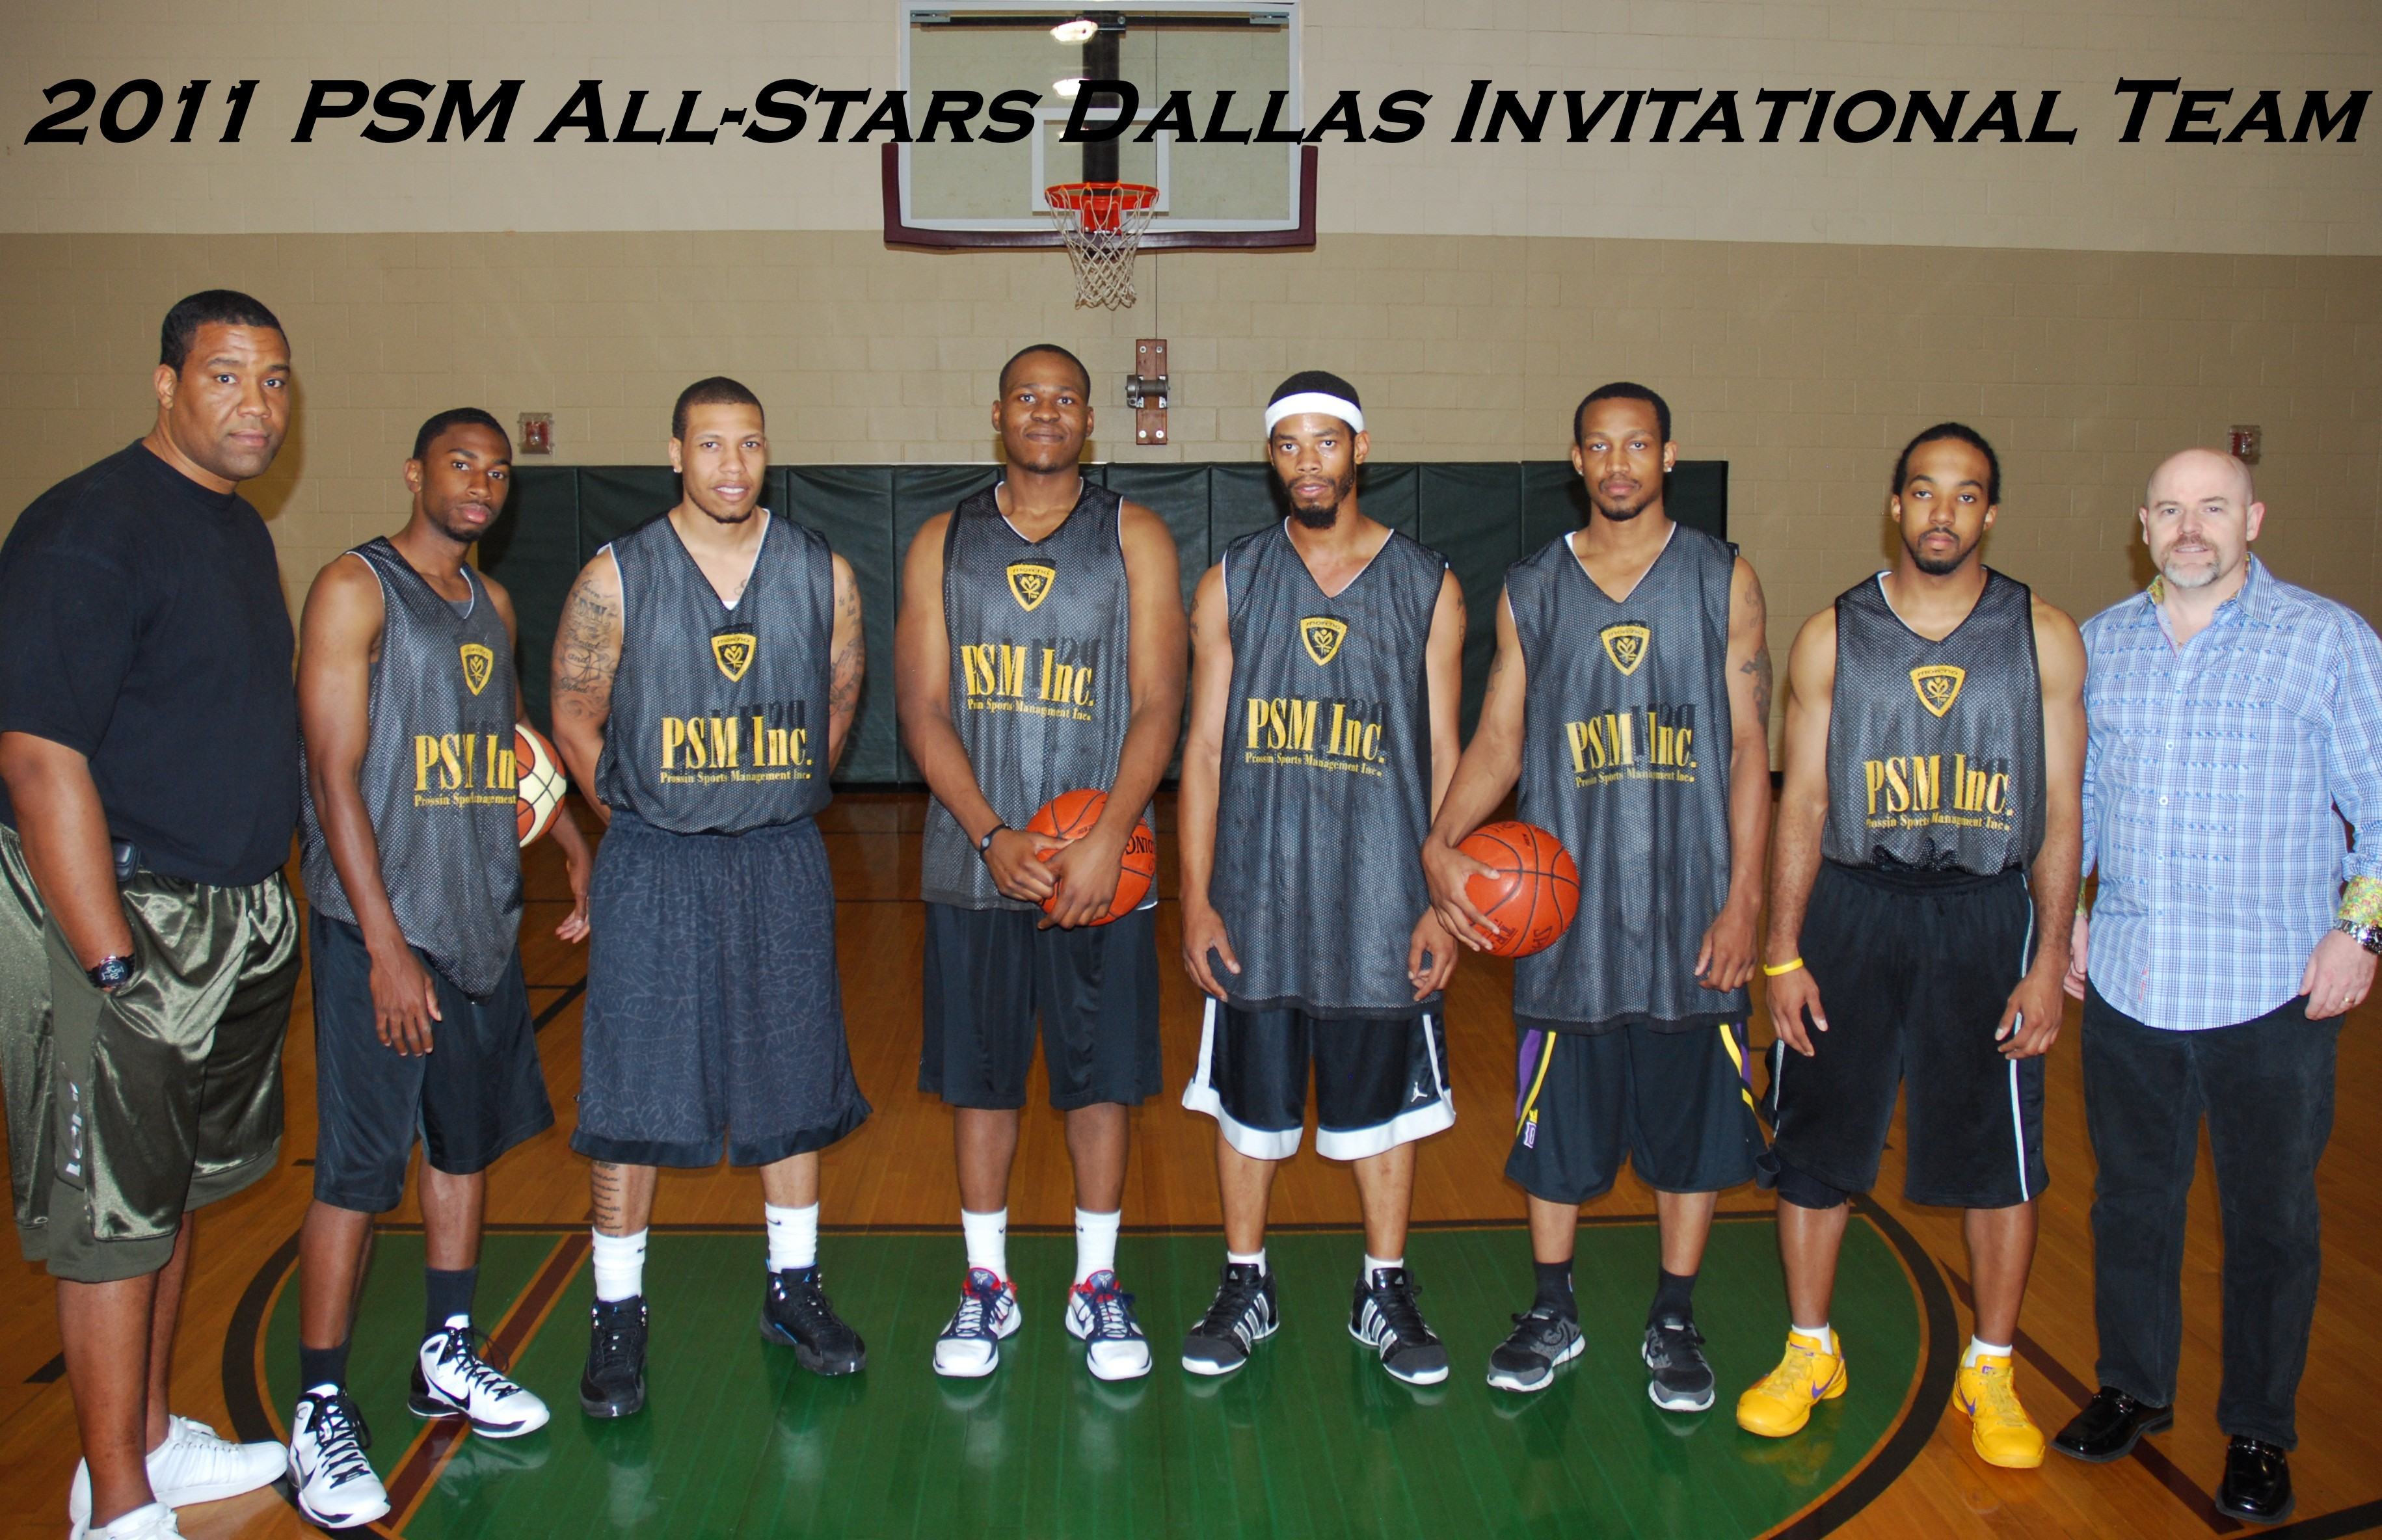 3rd Annual 2011 Europe Summer League PSM All-Stars Team